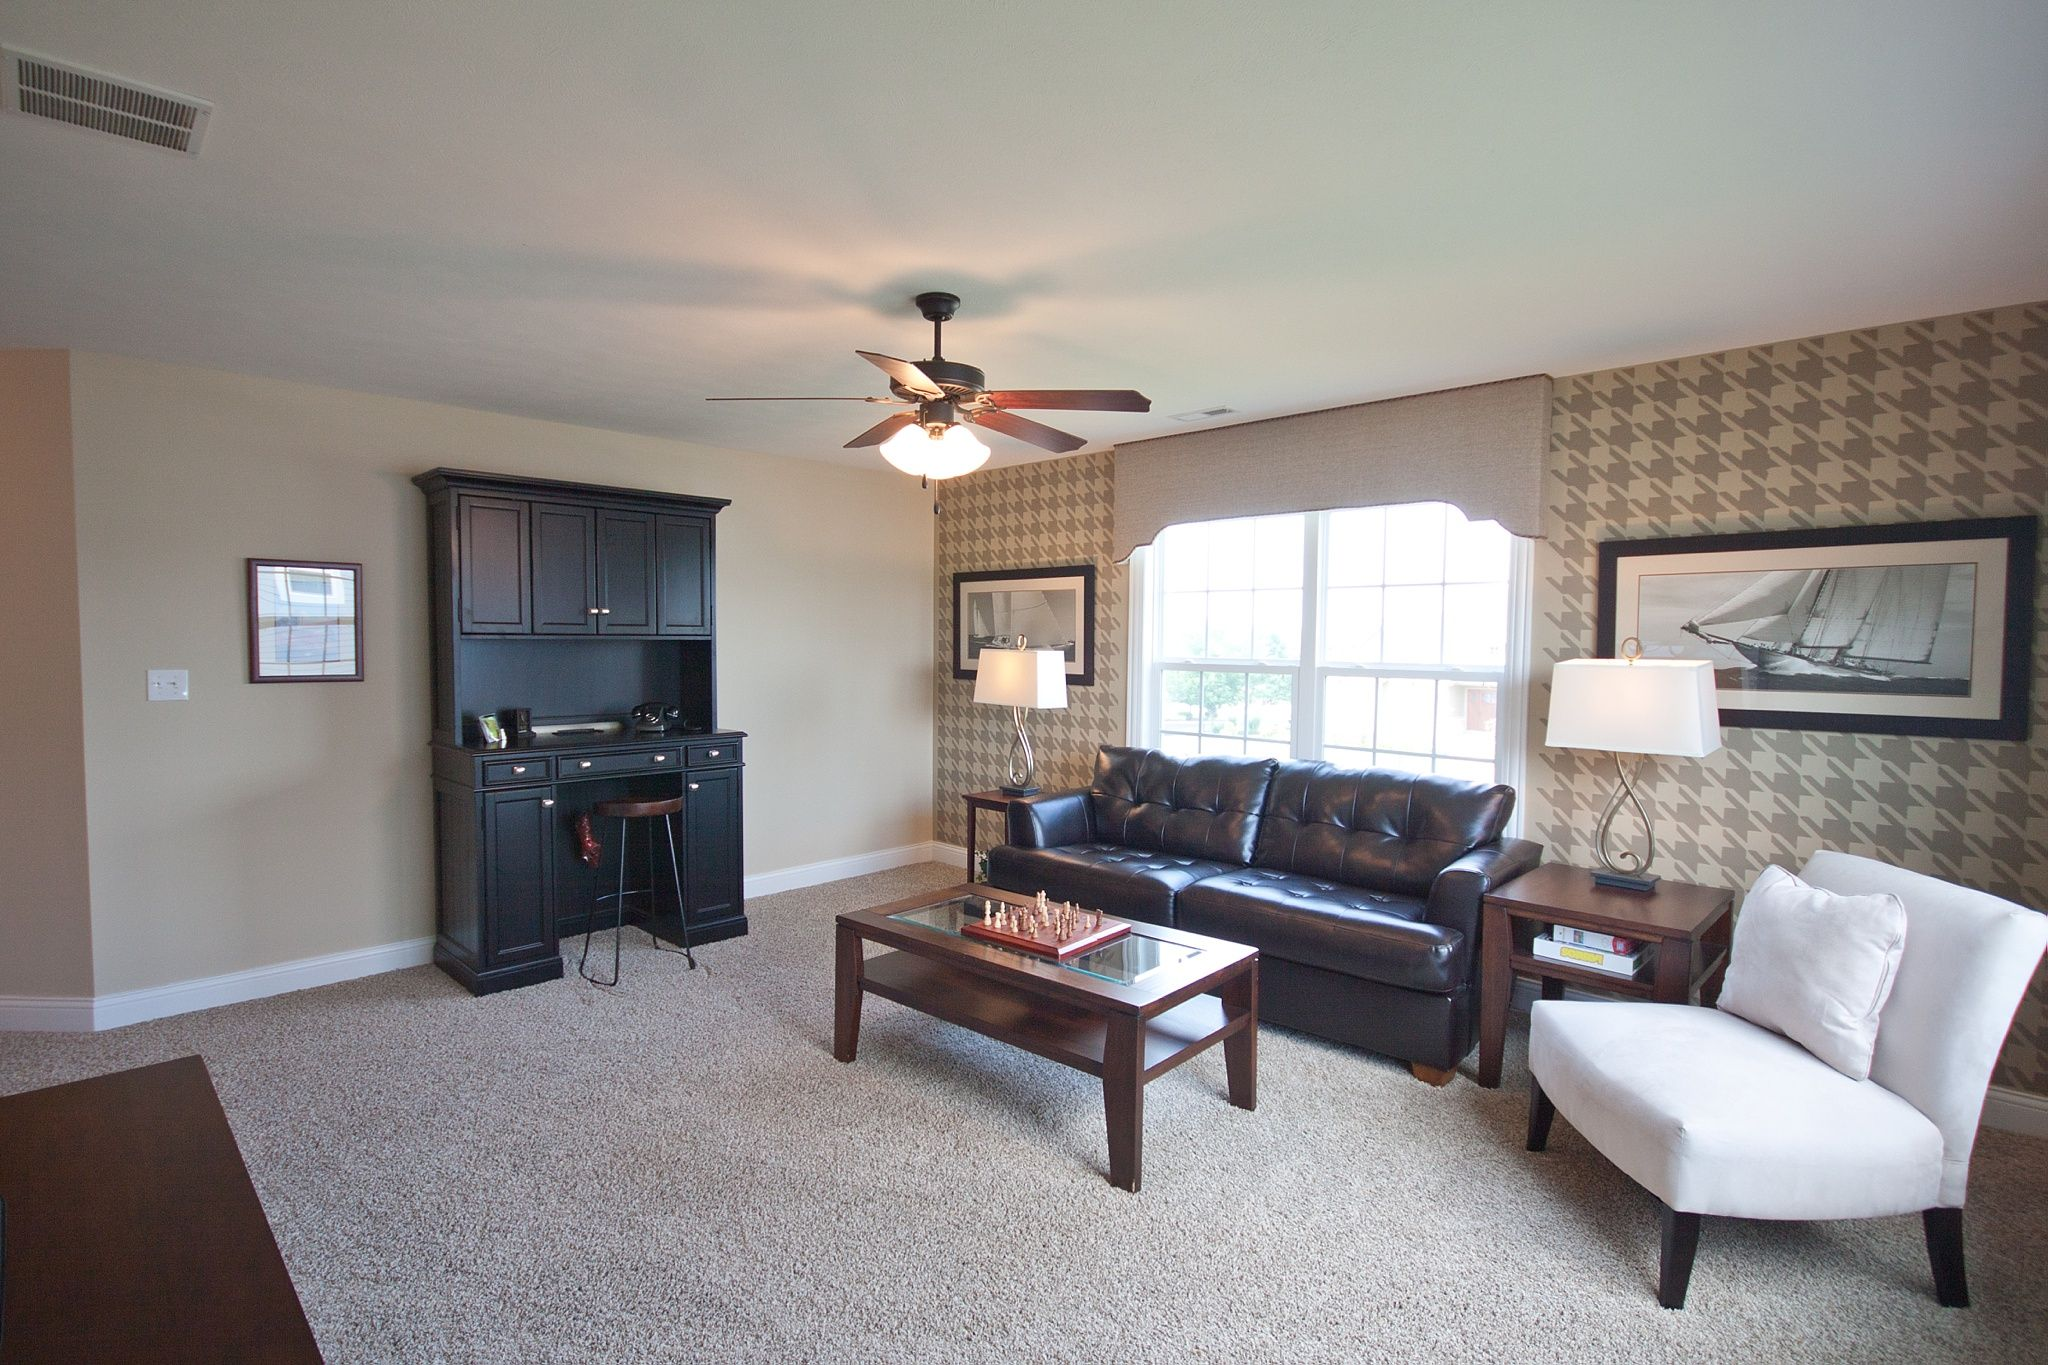 Living Area featured in the Larkspur By Olthof Homes in Gary, IN